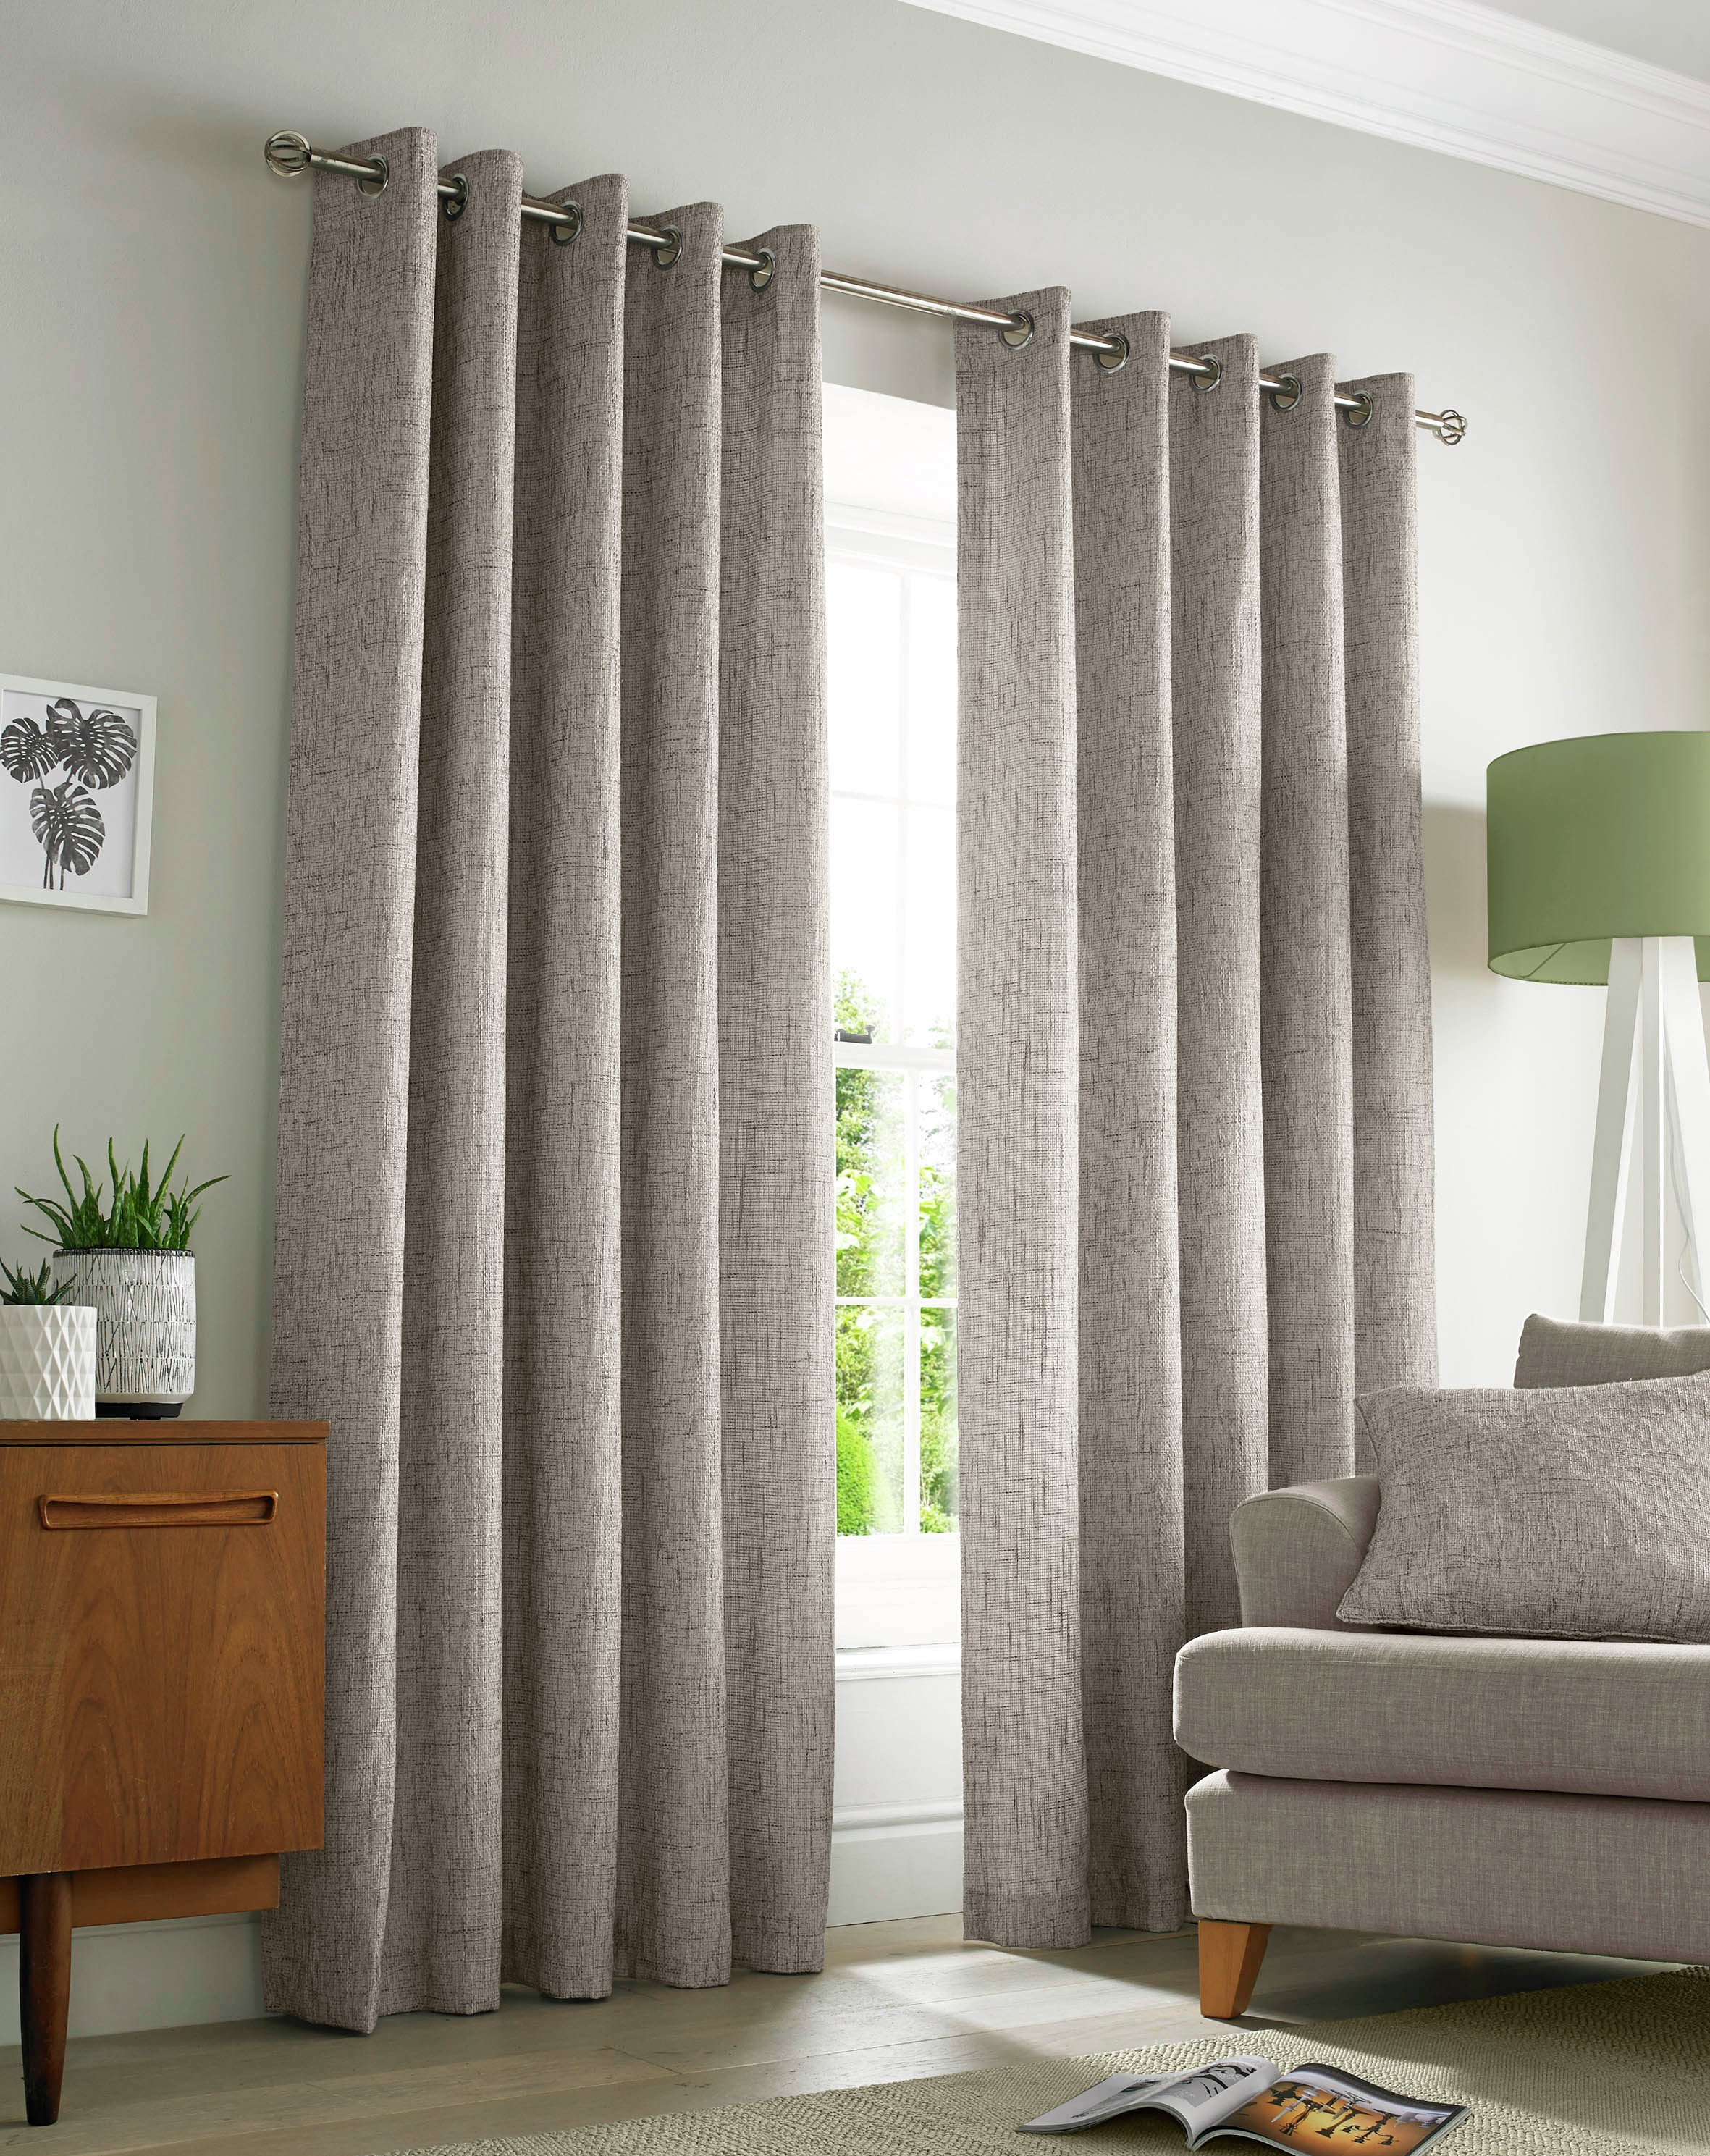 Image of Academy Eyelet Curtains - 165x137cm - Natural.